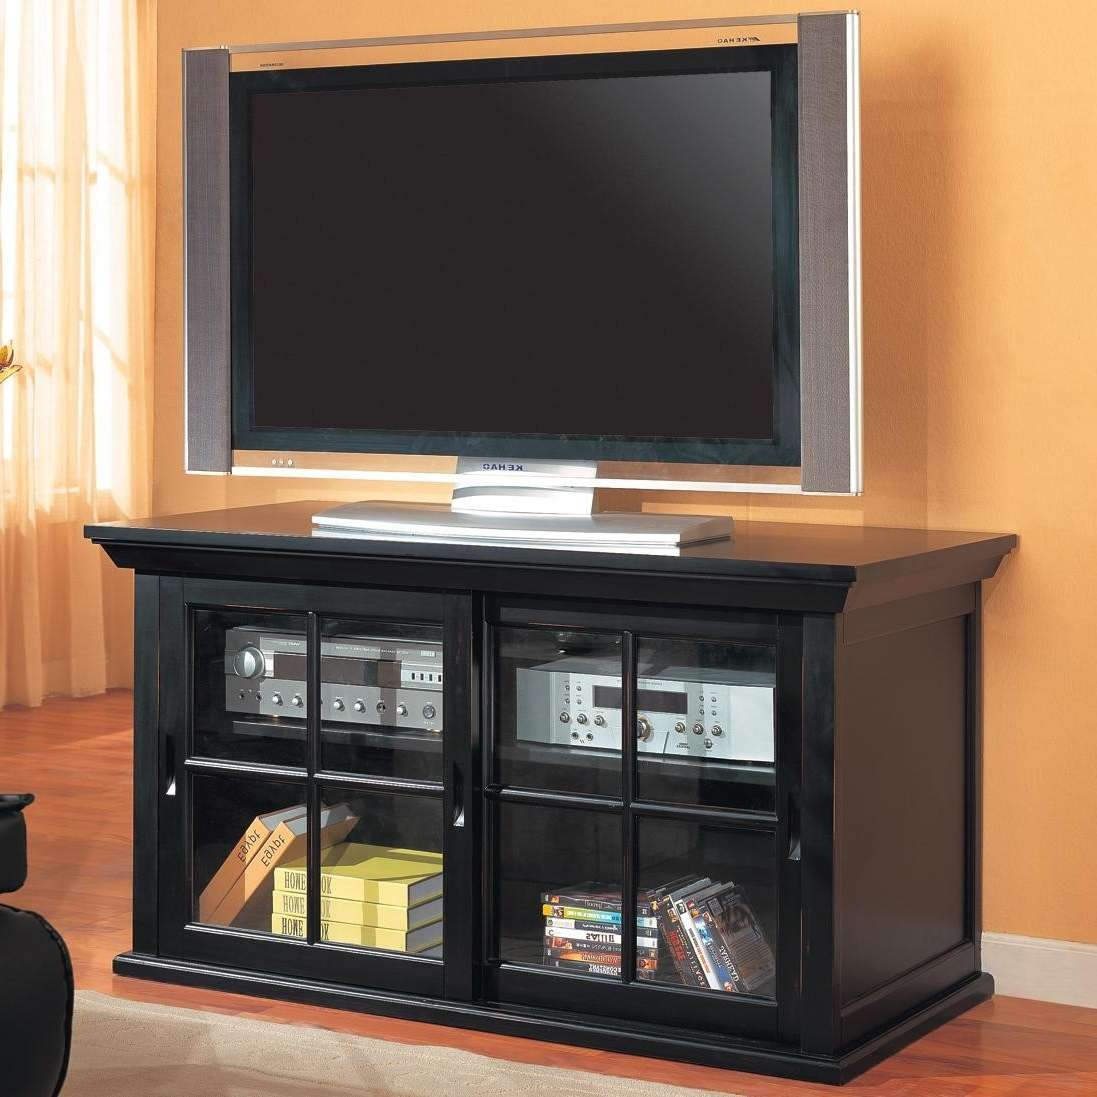 Tv Stands Transitional Media Console With Sliding Glass Doors Regarding Wooden Tv Cabinets With Glass Doors (View 5 of 20)